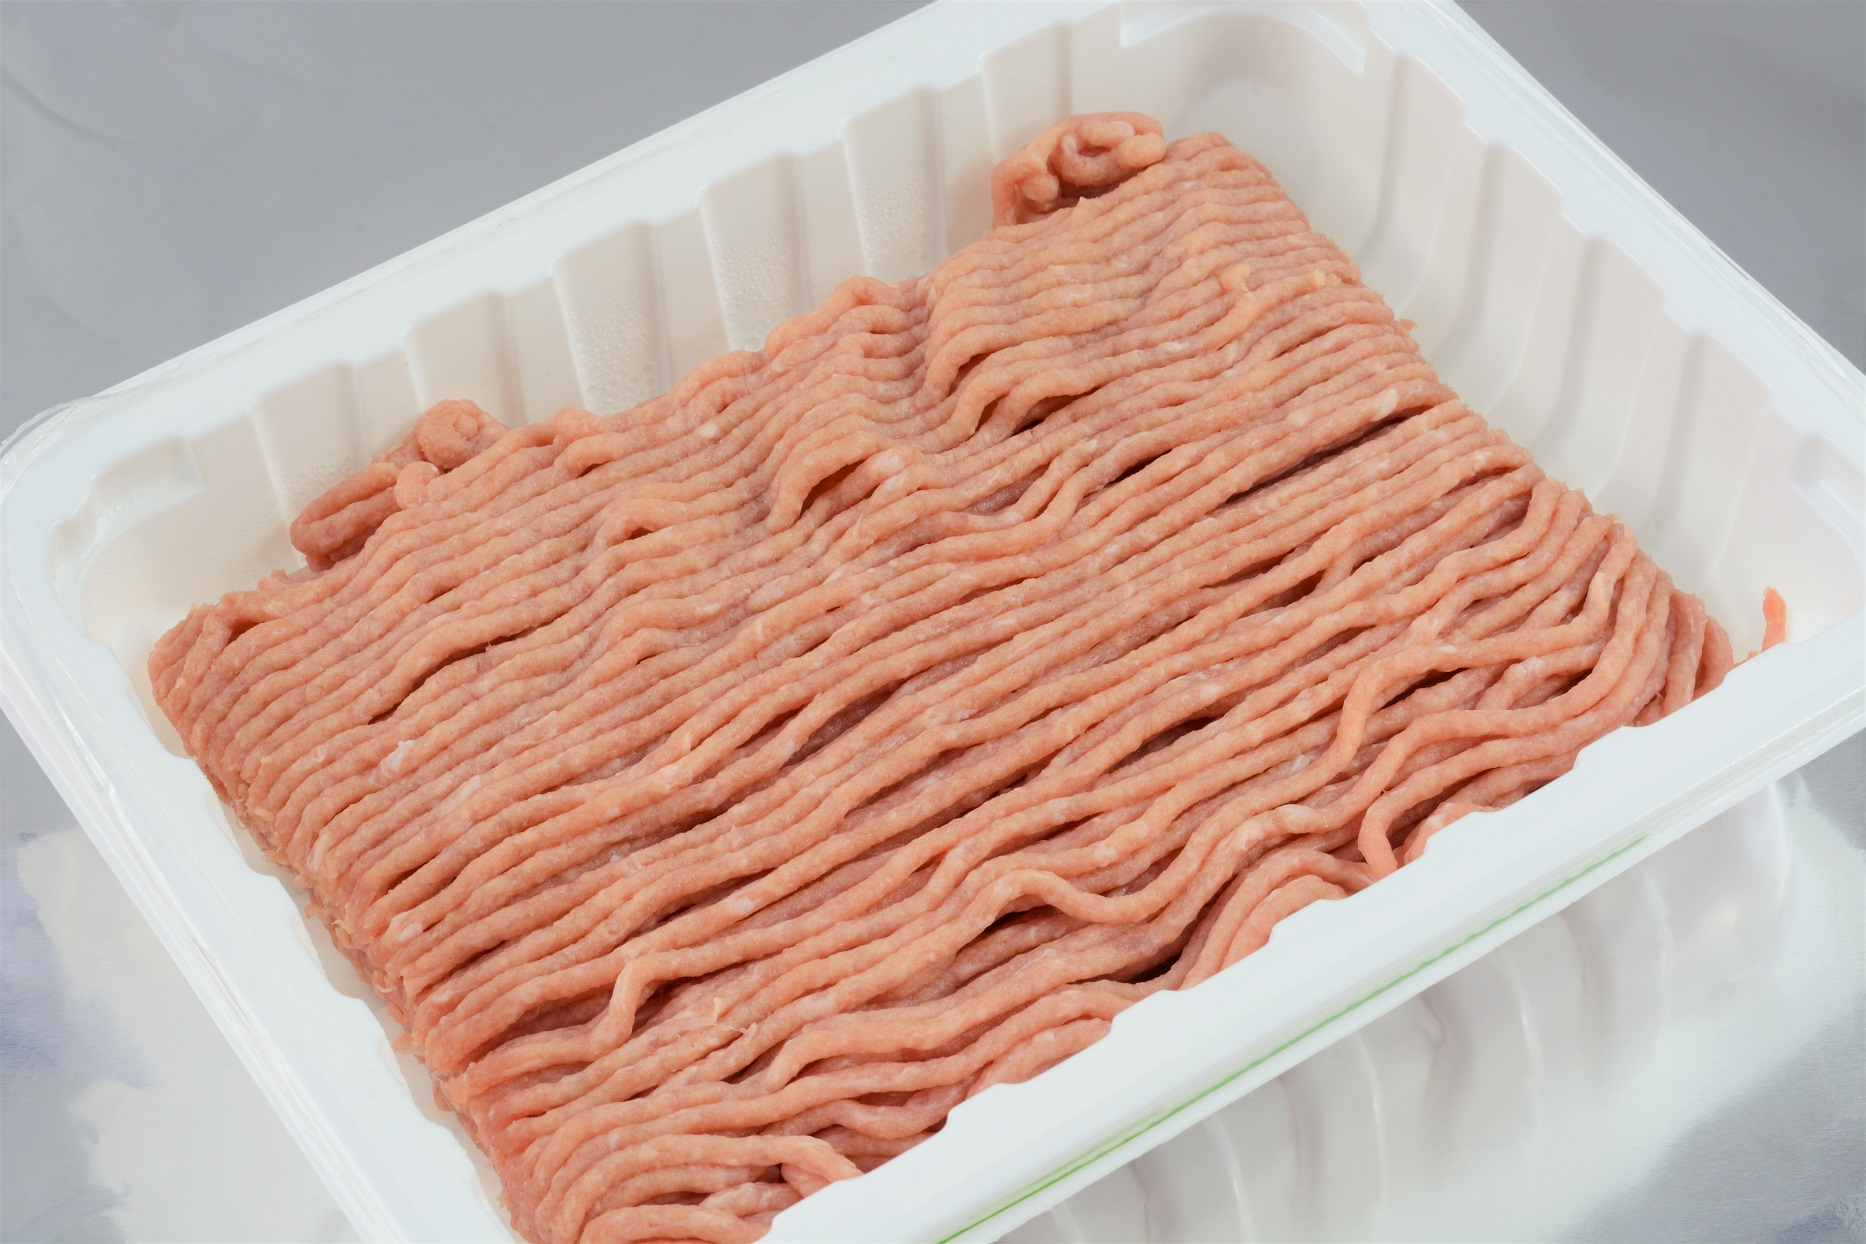 Raw Ground Turkey In White Tray